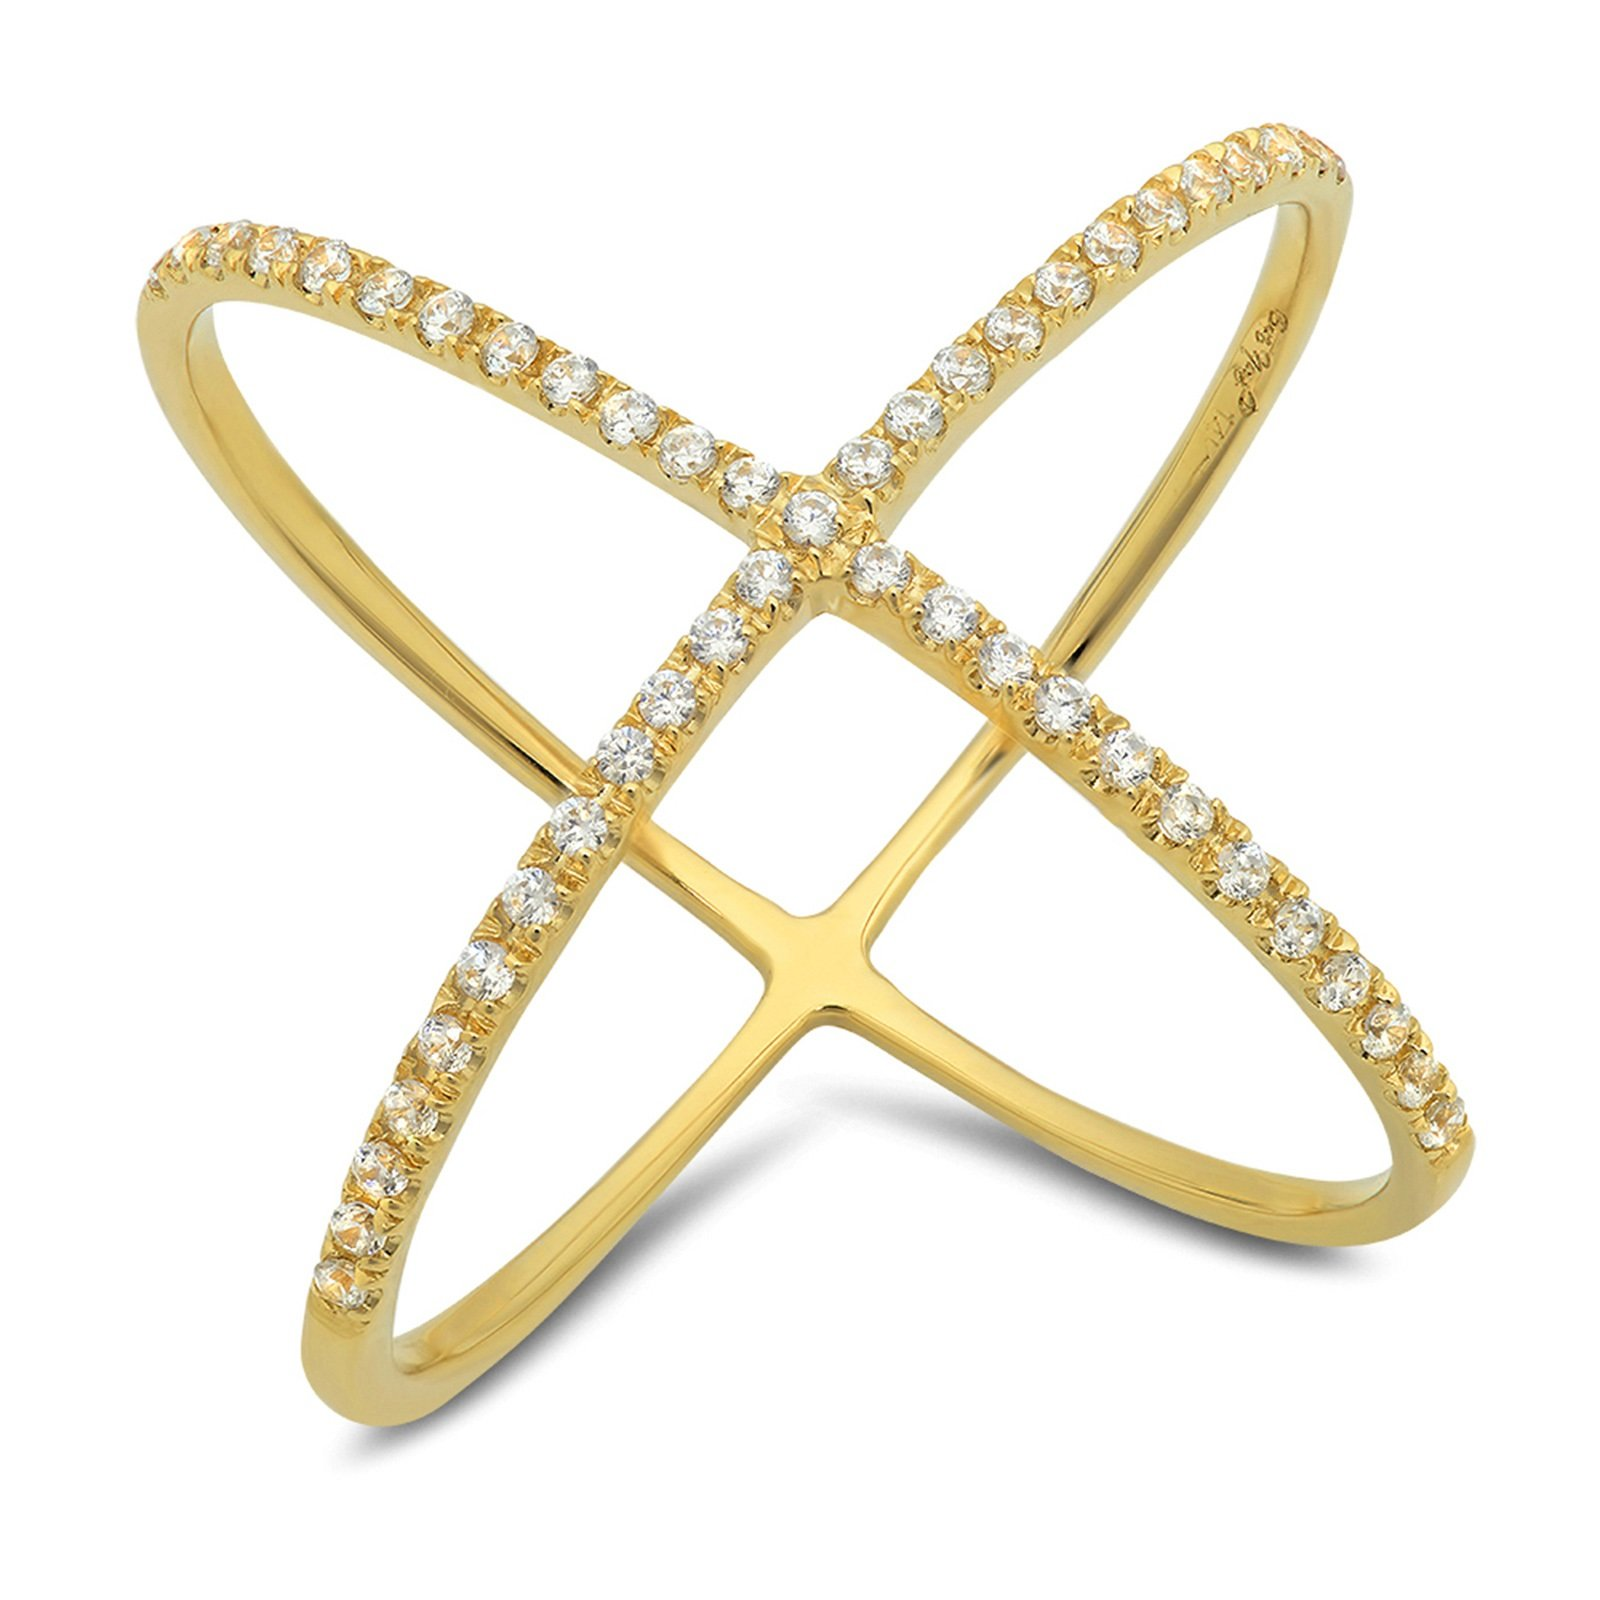 0.58 CT Round Cut CZ Pave Engagement Contemporary Cross Design Ring Band 14k Yellow Gold, Size 9.5